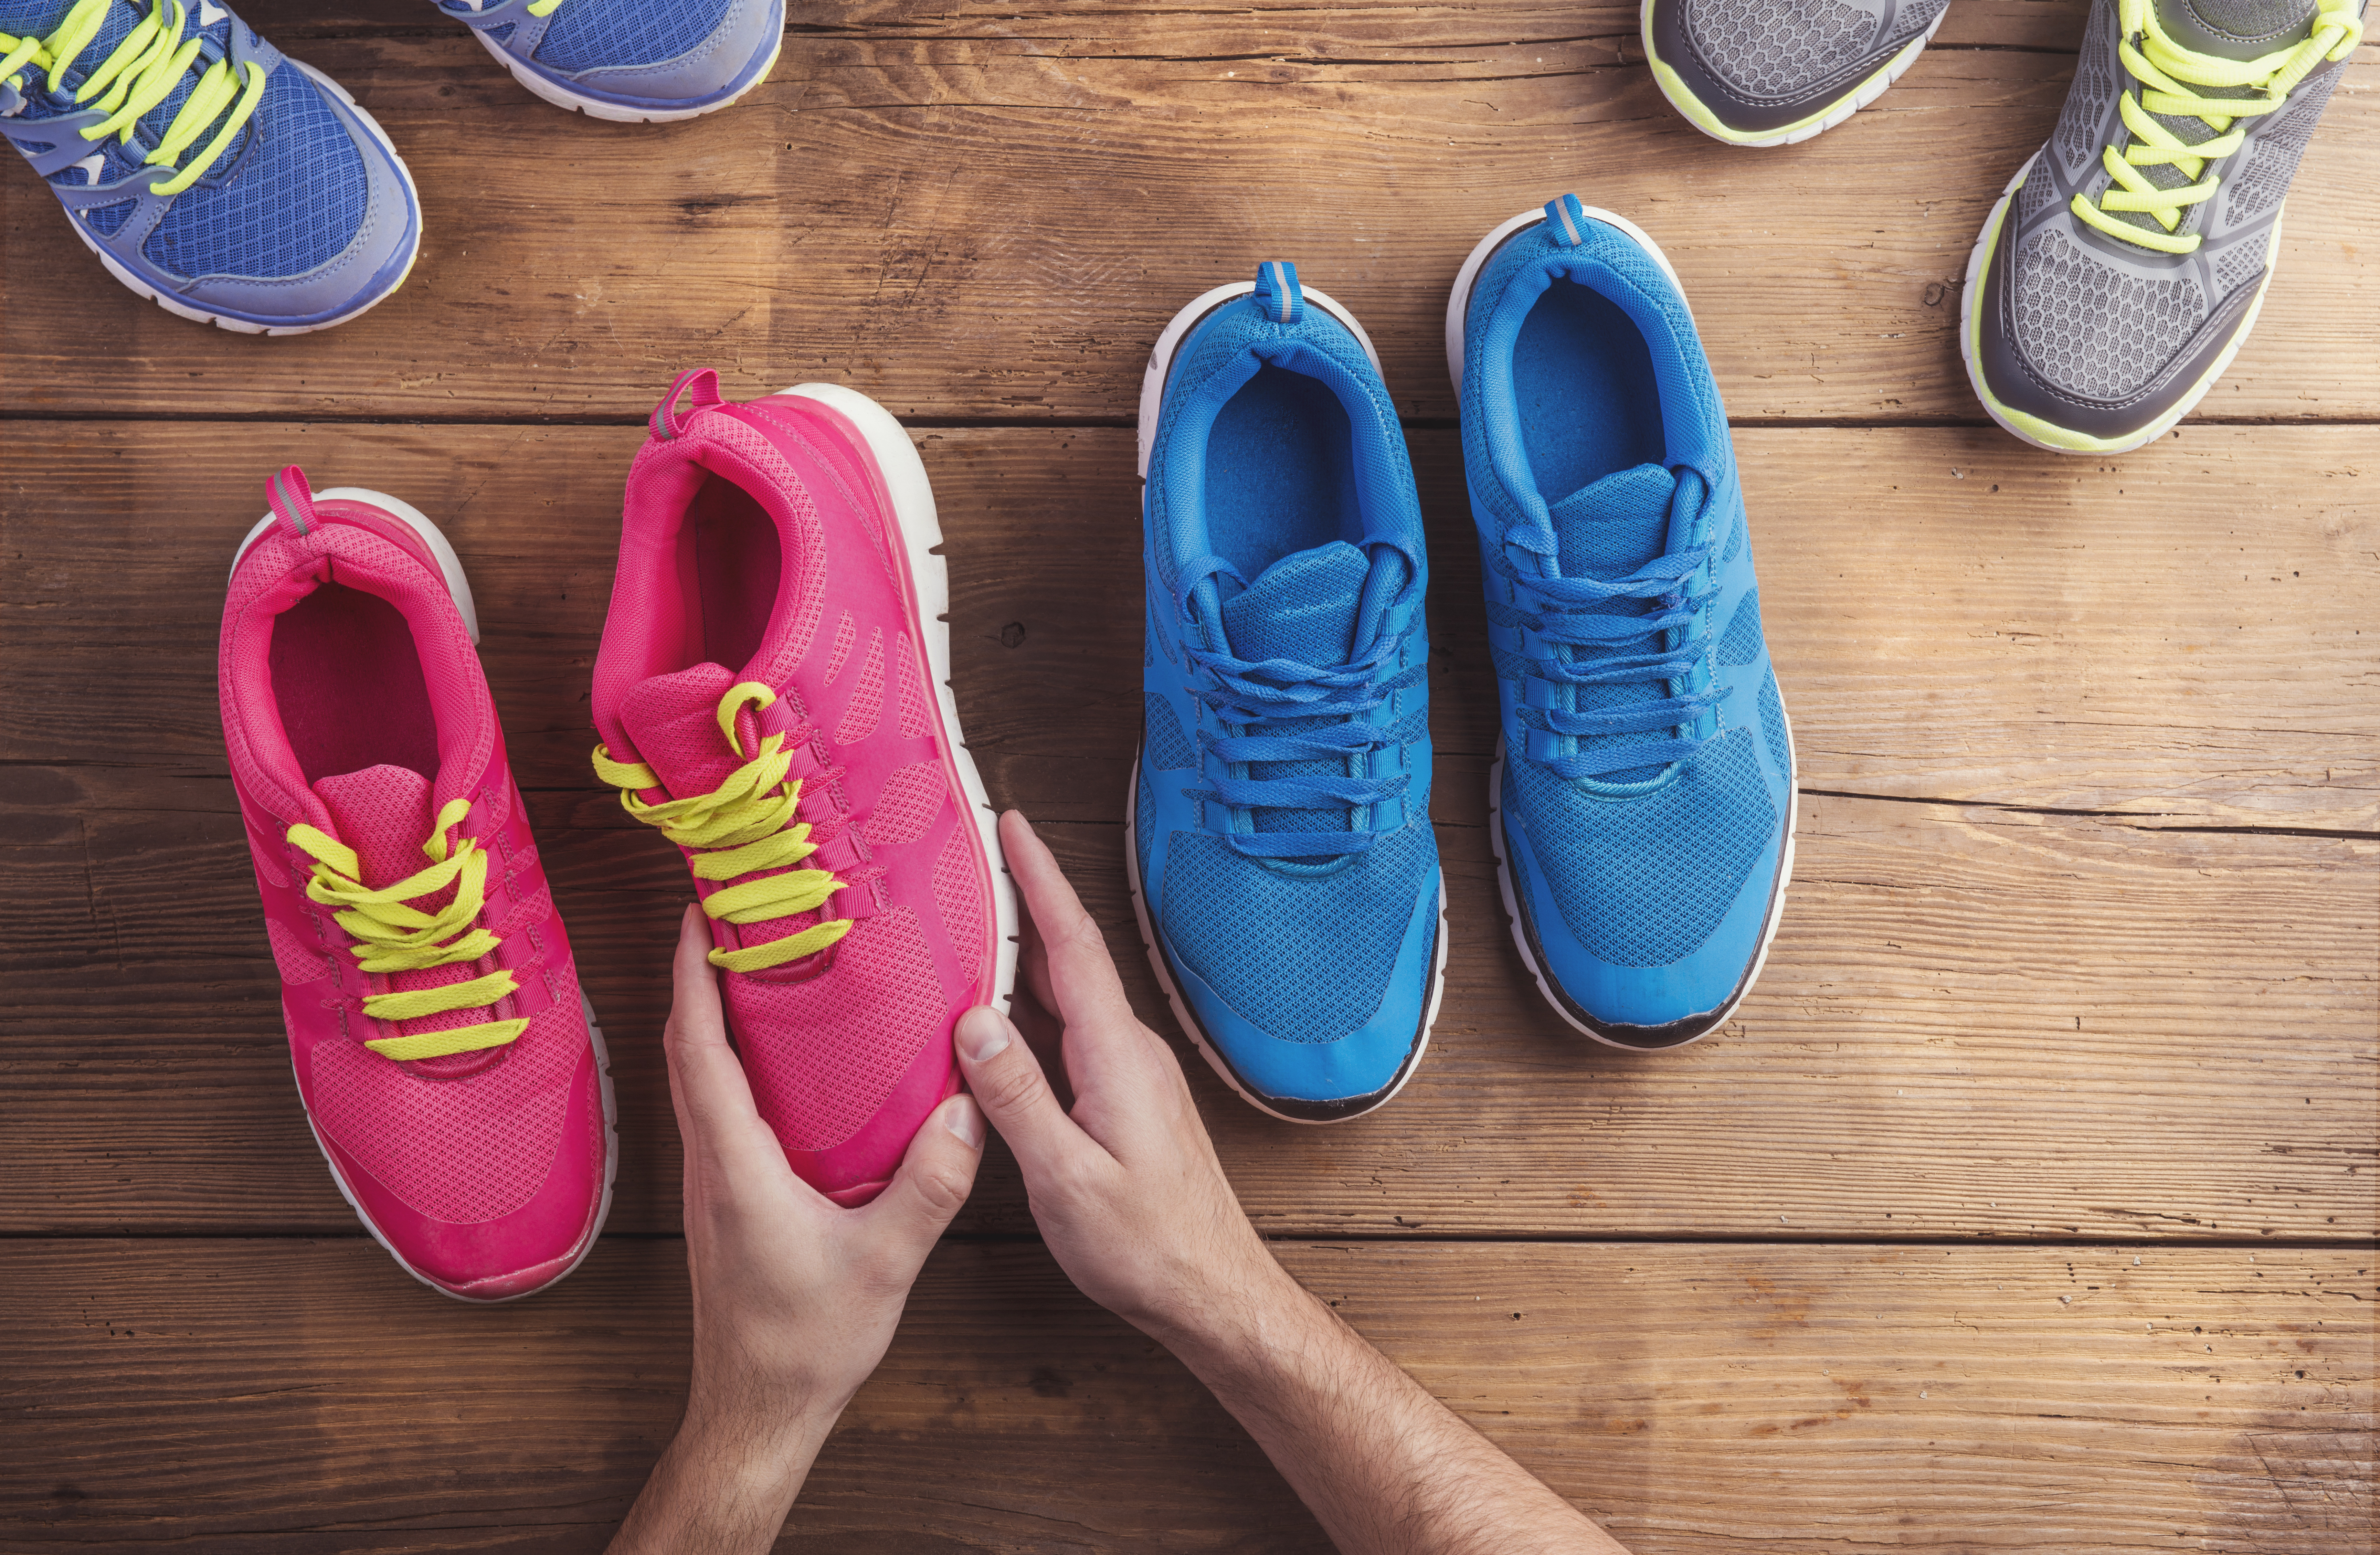 The Pink Shoes: Parenting, Stereotypes, and Gender